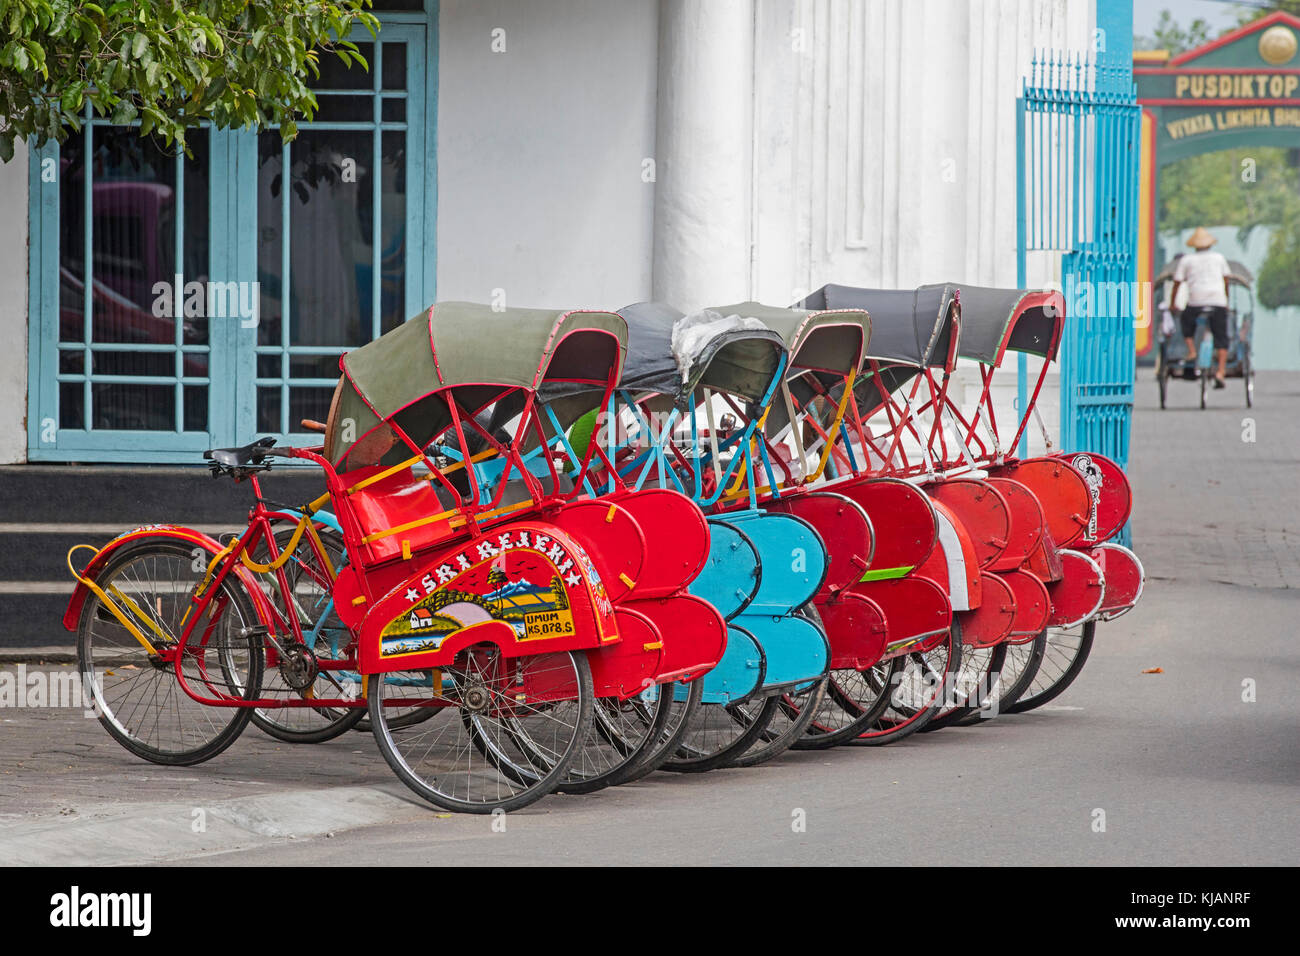 Cycle rickshaws / becaks for public transport in the city Surakarta / Solo, Central Java, Indonesia - Stock Image